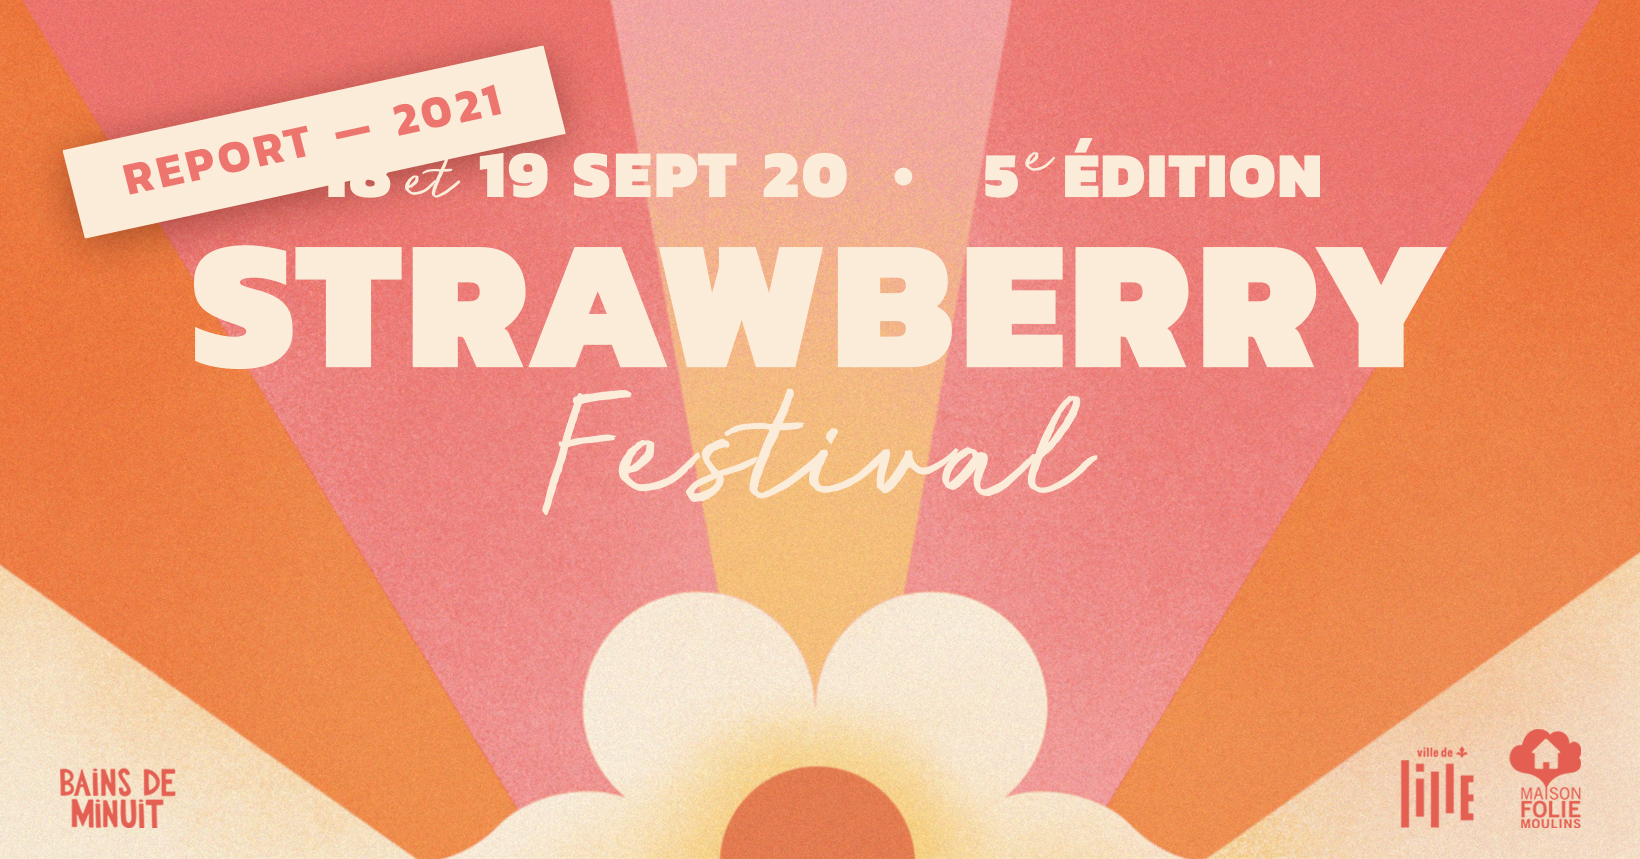 REPORT 2021 // 18-19 sept. 20 – STRAWBERRY FEST #5 / Maison Folie Moulins, Lille